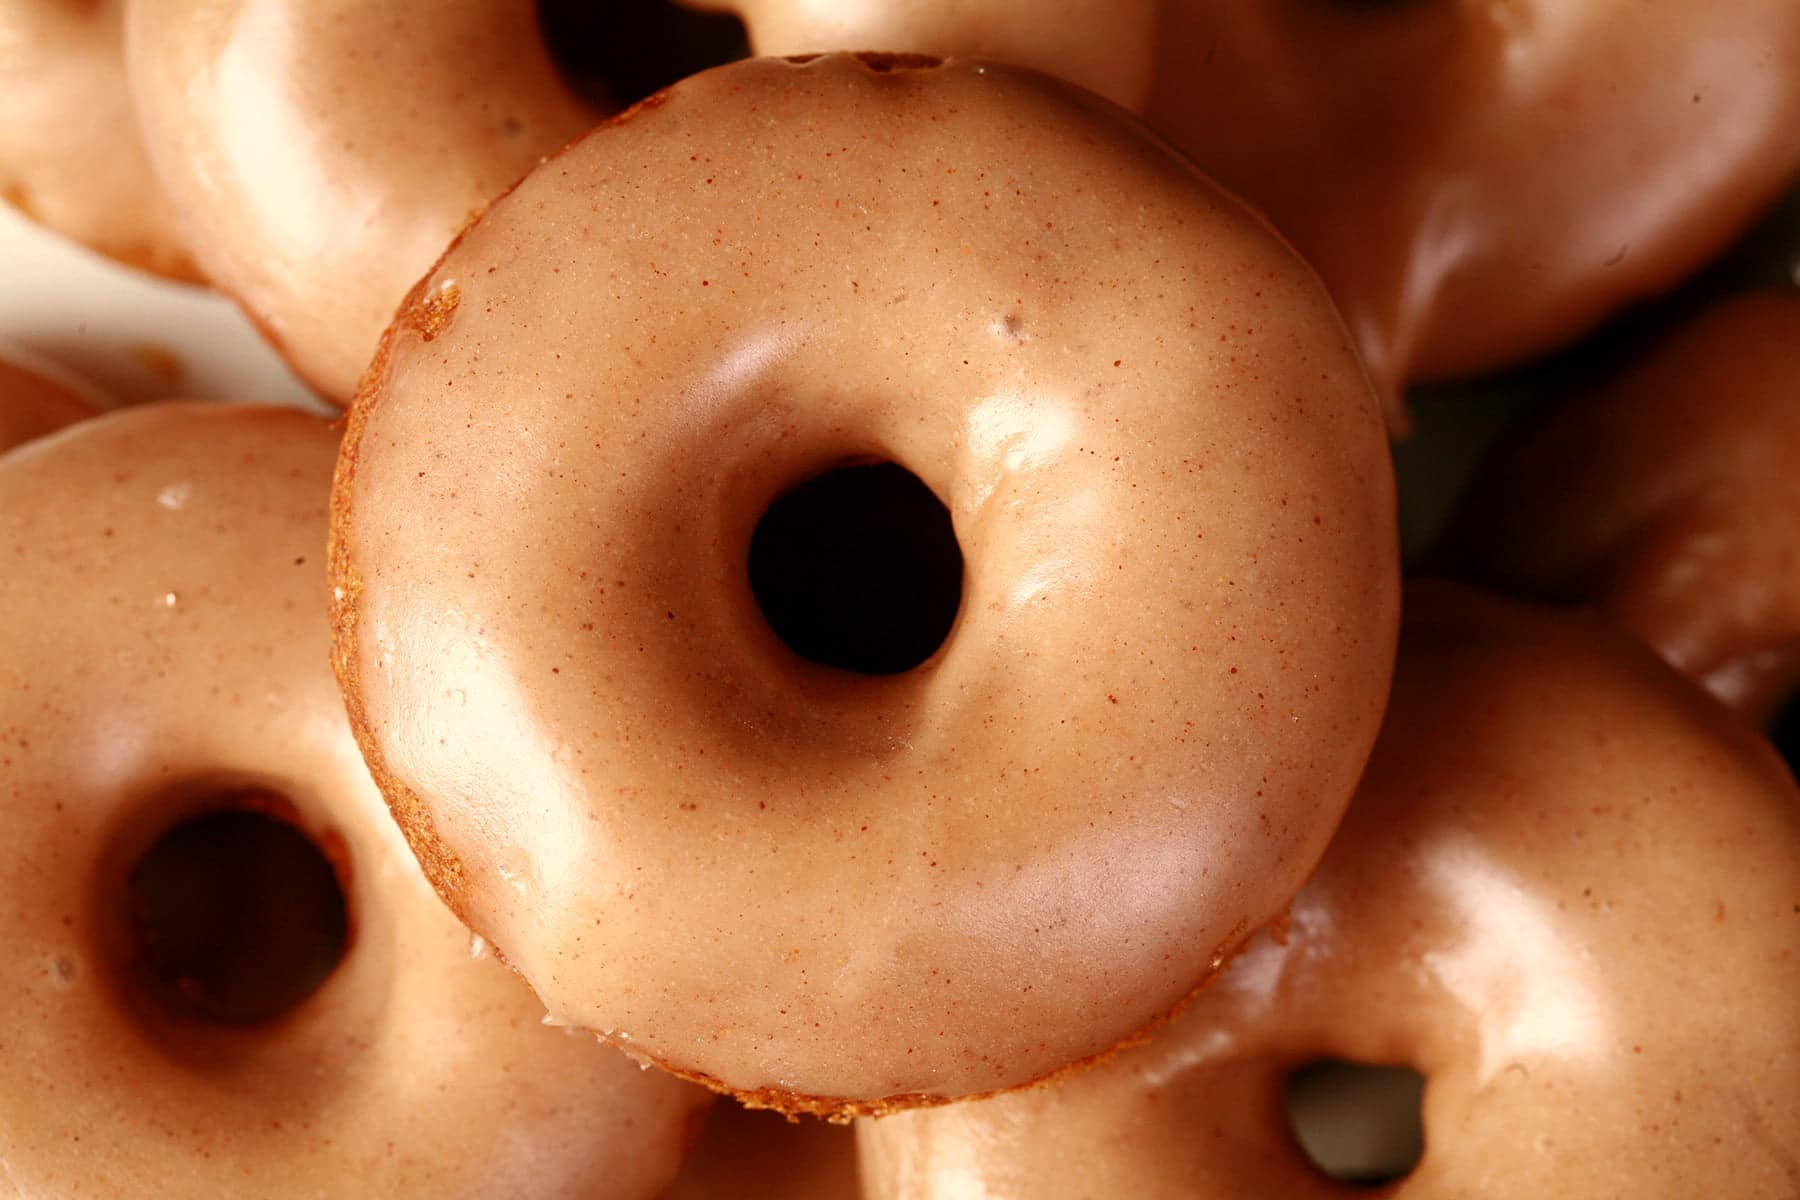 Close up view of gluten-free pumpkin spice mini doughnuts. They are glazed with a tan coloured frosting